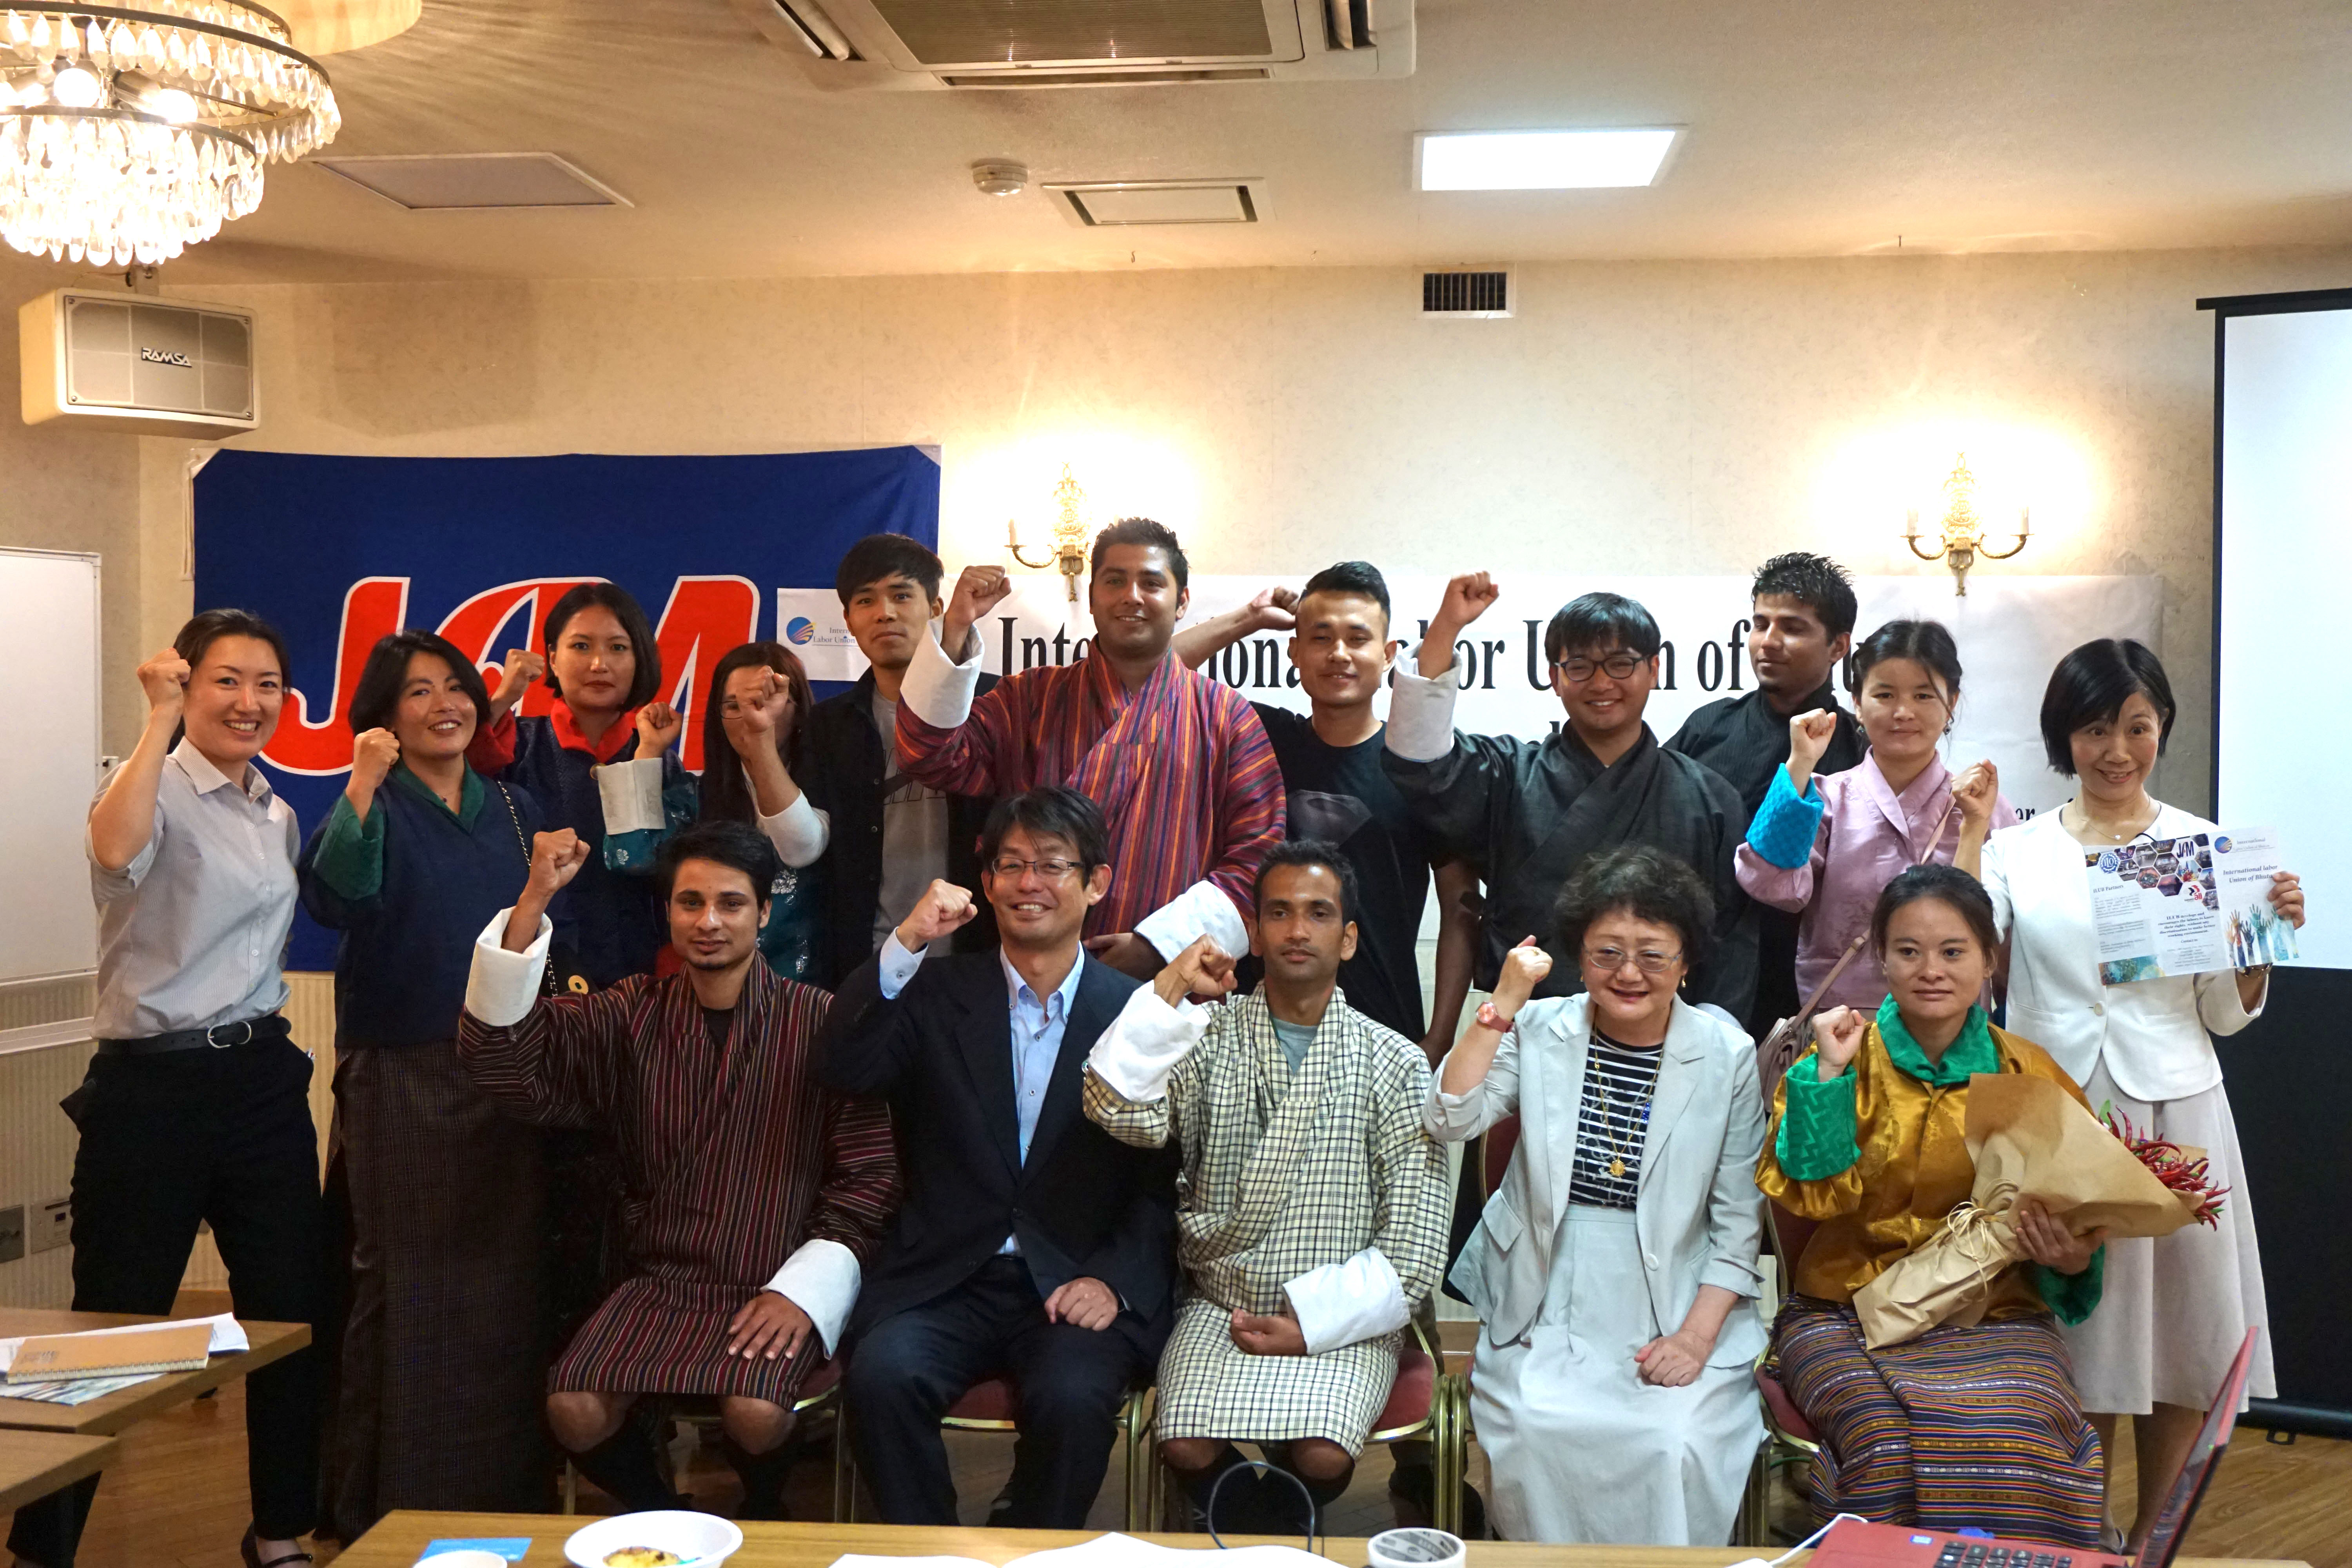 Jaganath Koirala (front row, center) poses at the inaugural meeting of the International Labor Union of Bhutan alongside other organizing members in Matsuyama, Ehime Prefecture, on Sept. 1. | COURTESY OF JAGANATH KOIRALA